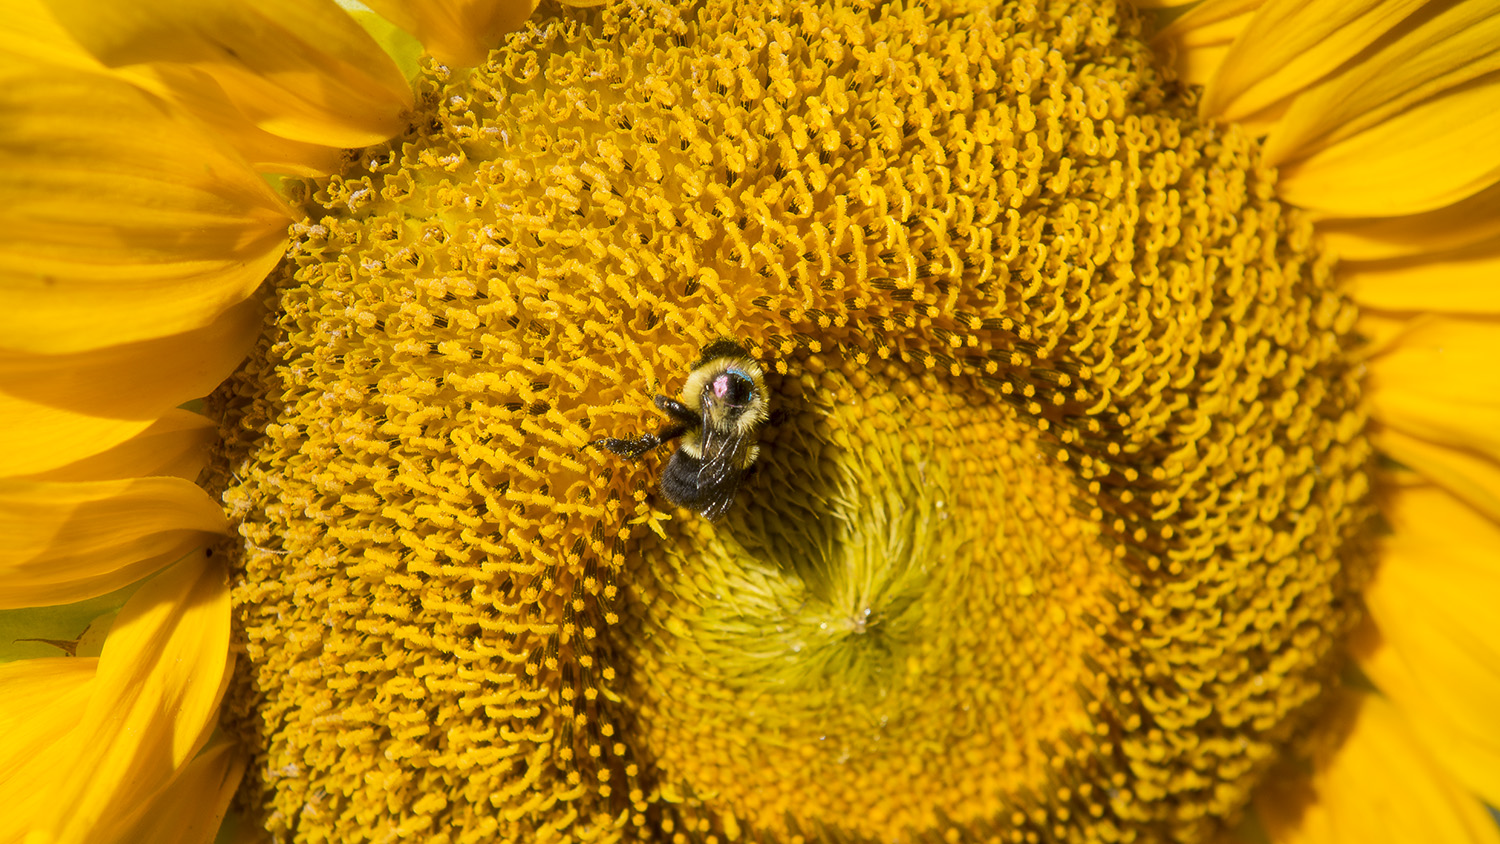 Bumble bee on a sunflower.